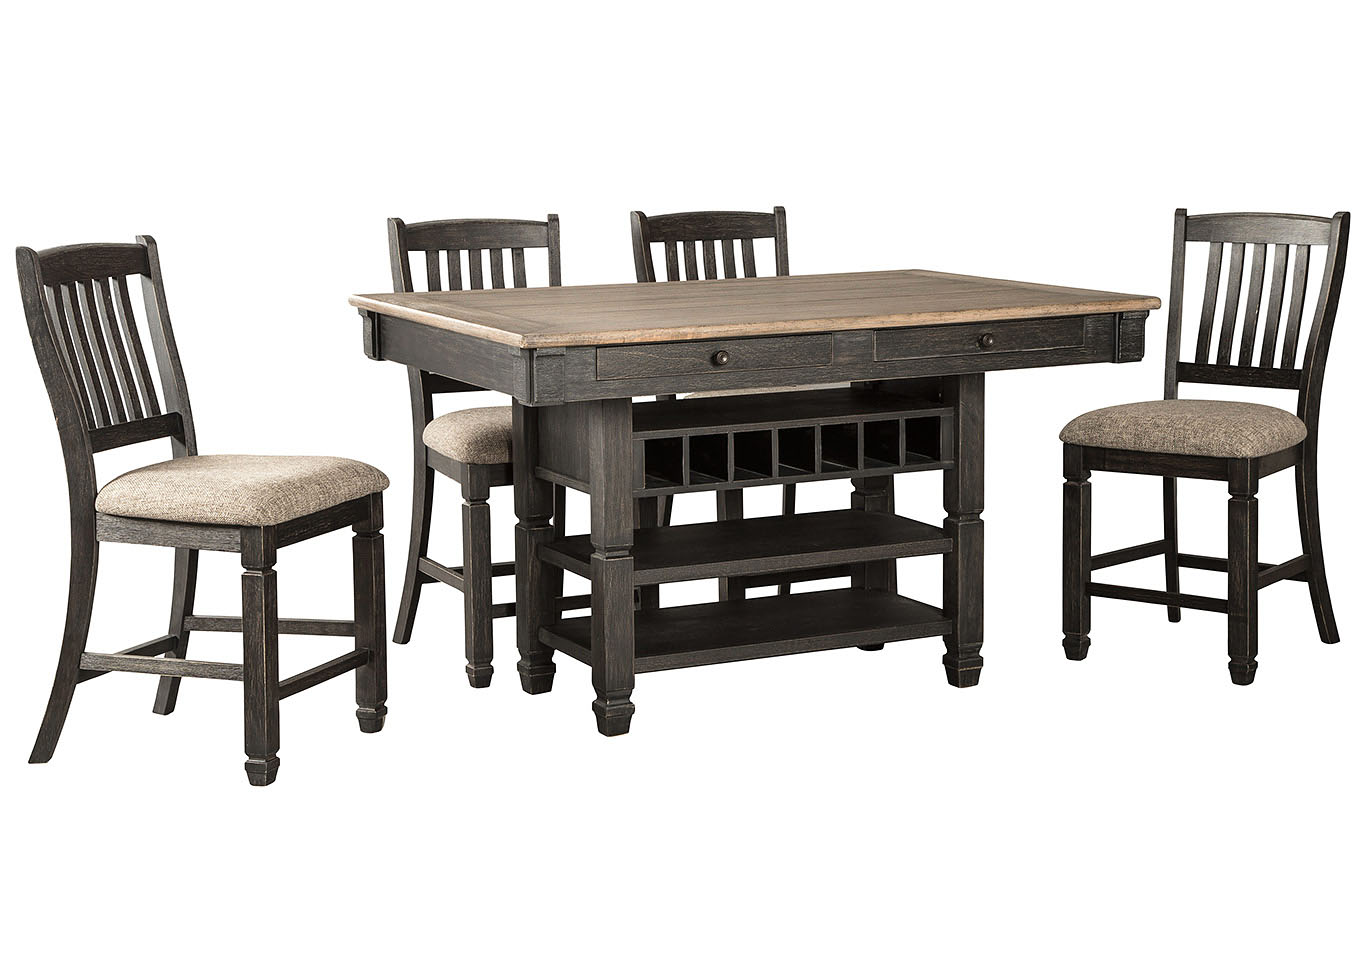 Tyler Creek Counter Height Dining Table and 4 Counter Stools,Signature Design By Ashley